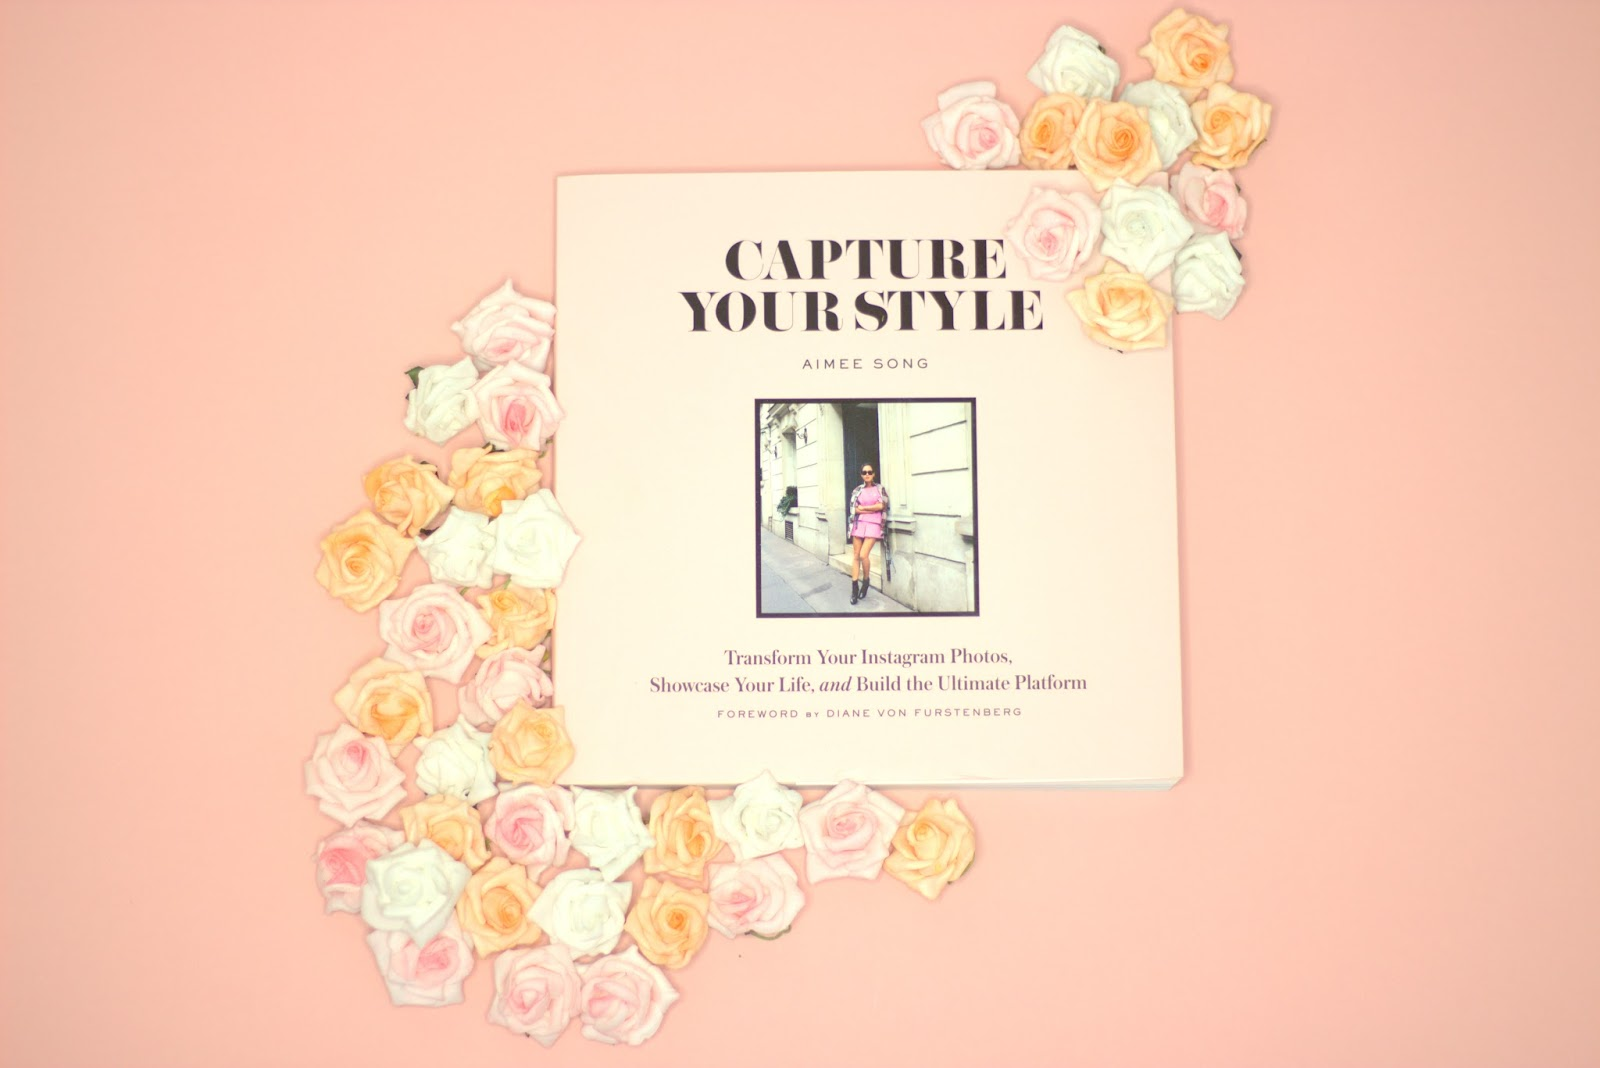 capture your style book, review, aimee song, instagram tips